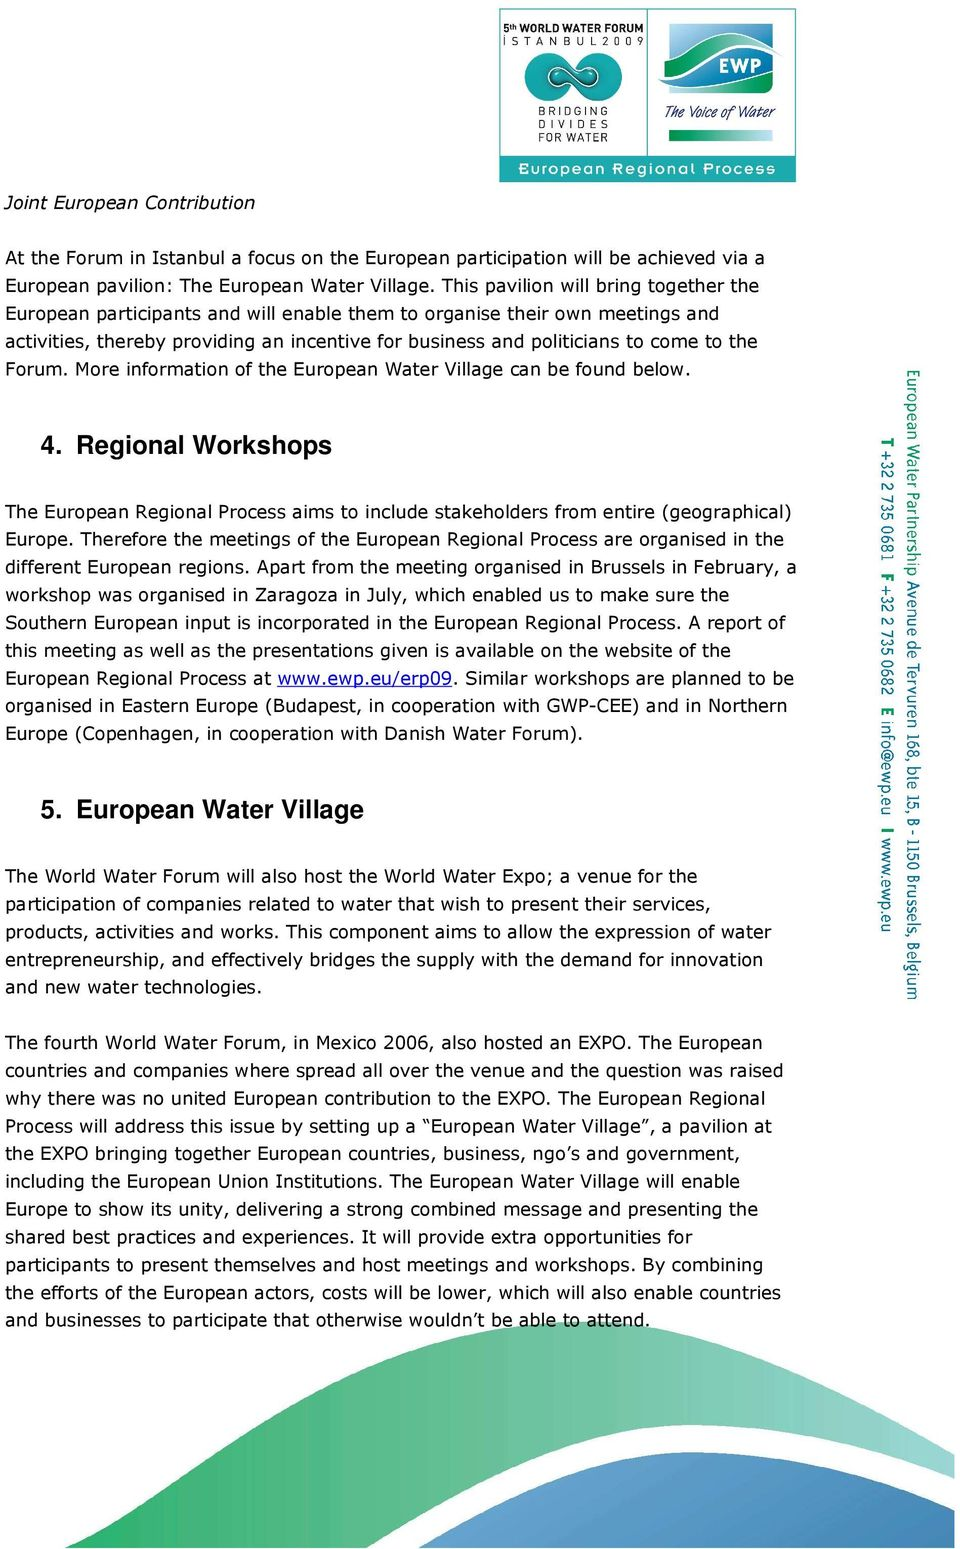 the Forum. More information of the European Water Village can be found below. 4. Regional Workshops The European Regional Process aims to include stakeholders from entire (geographical) Europe.